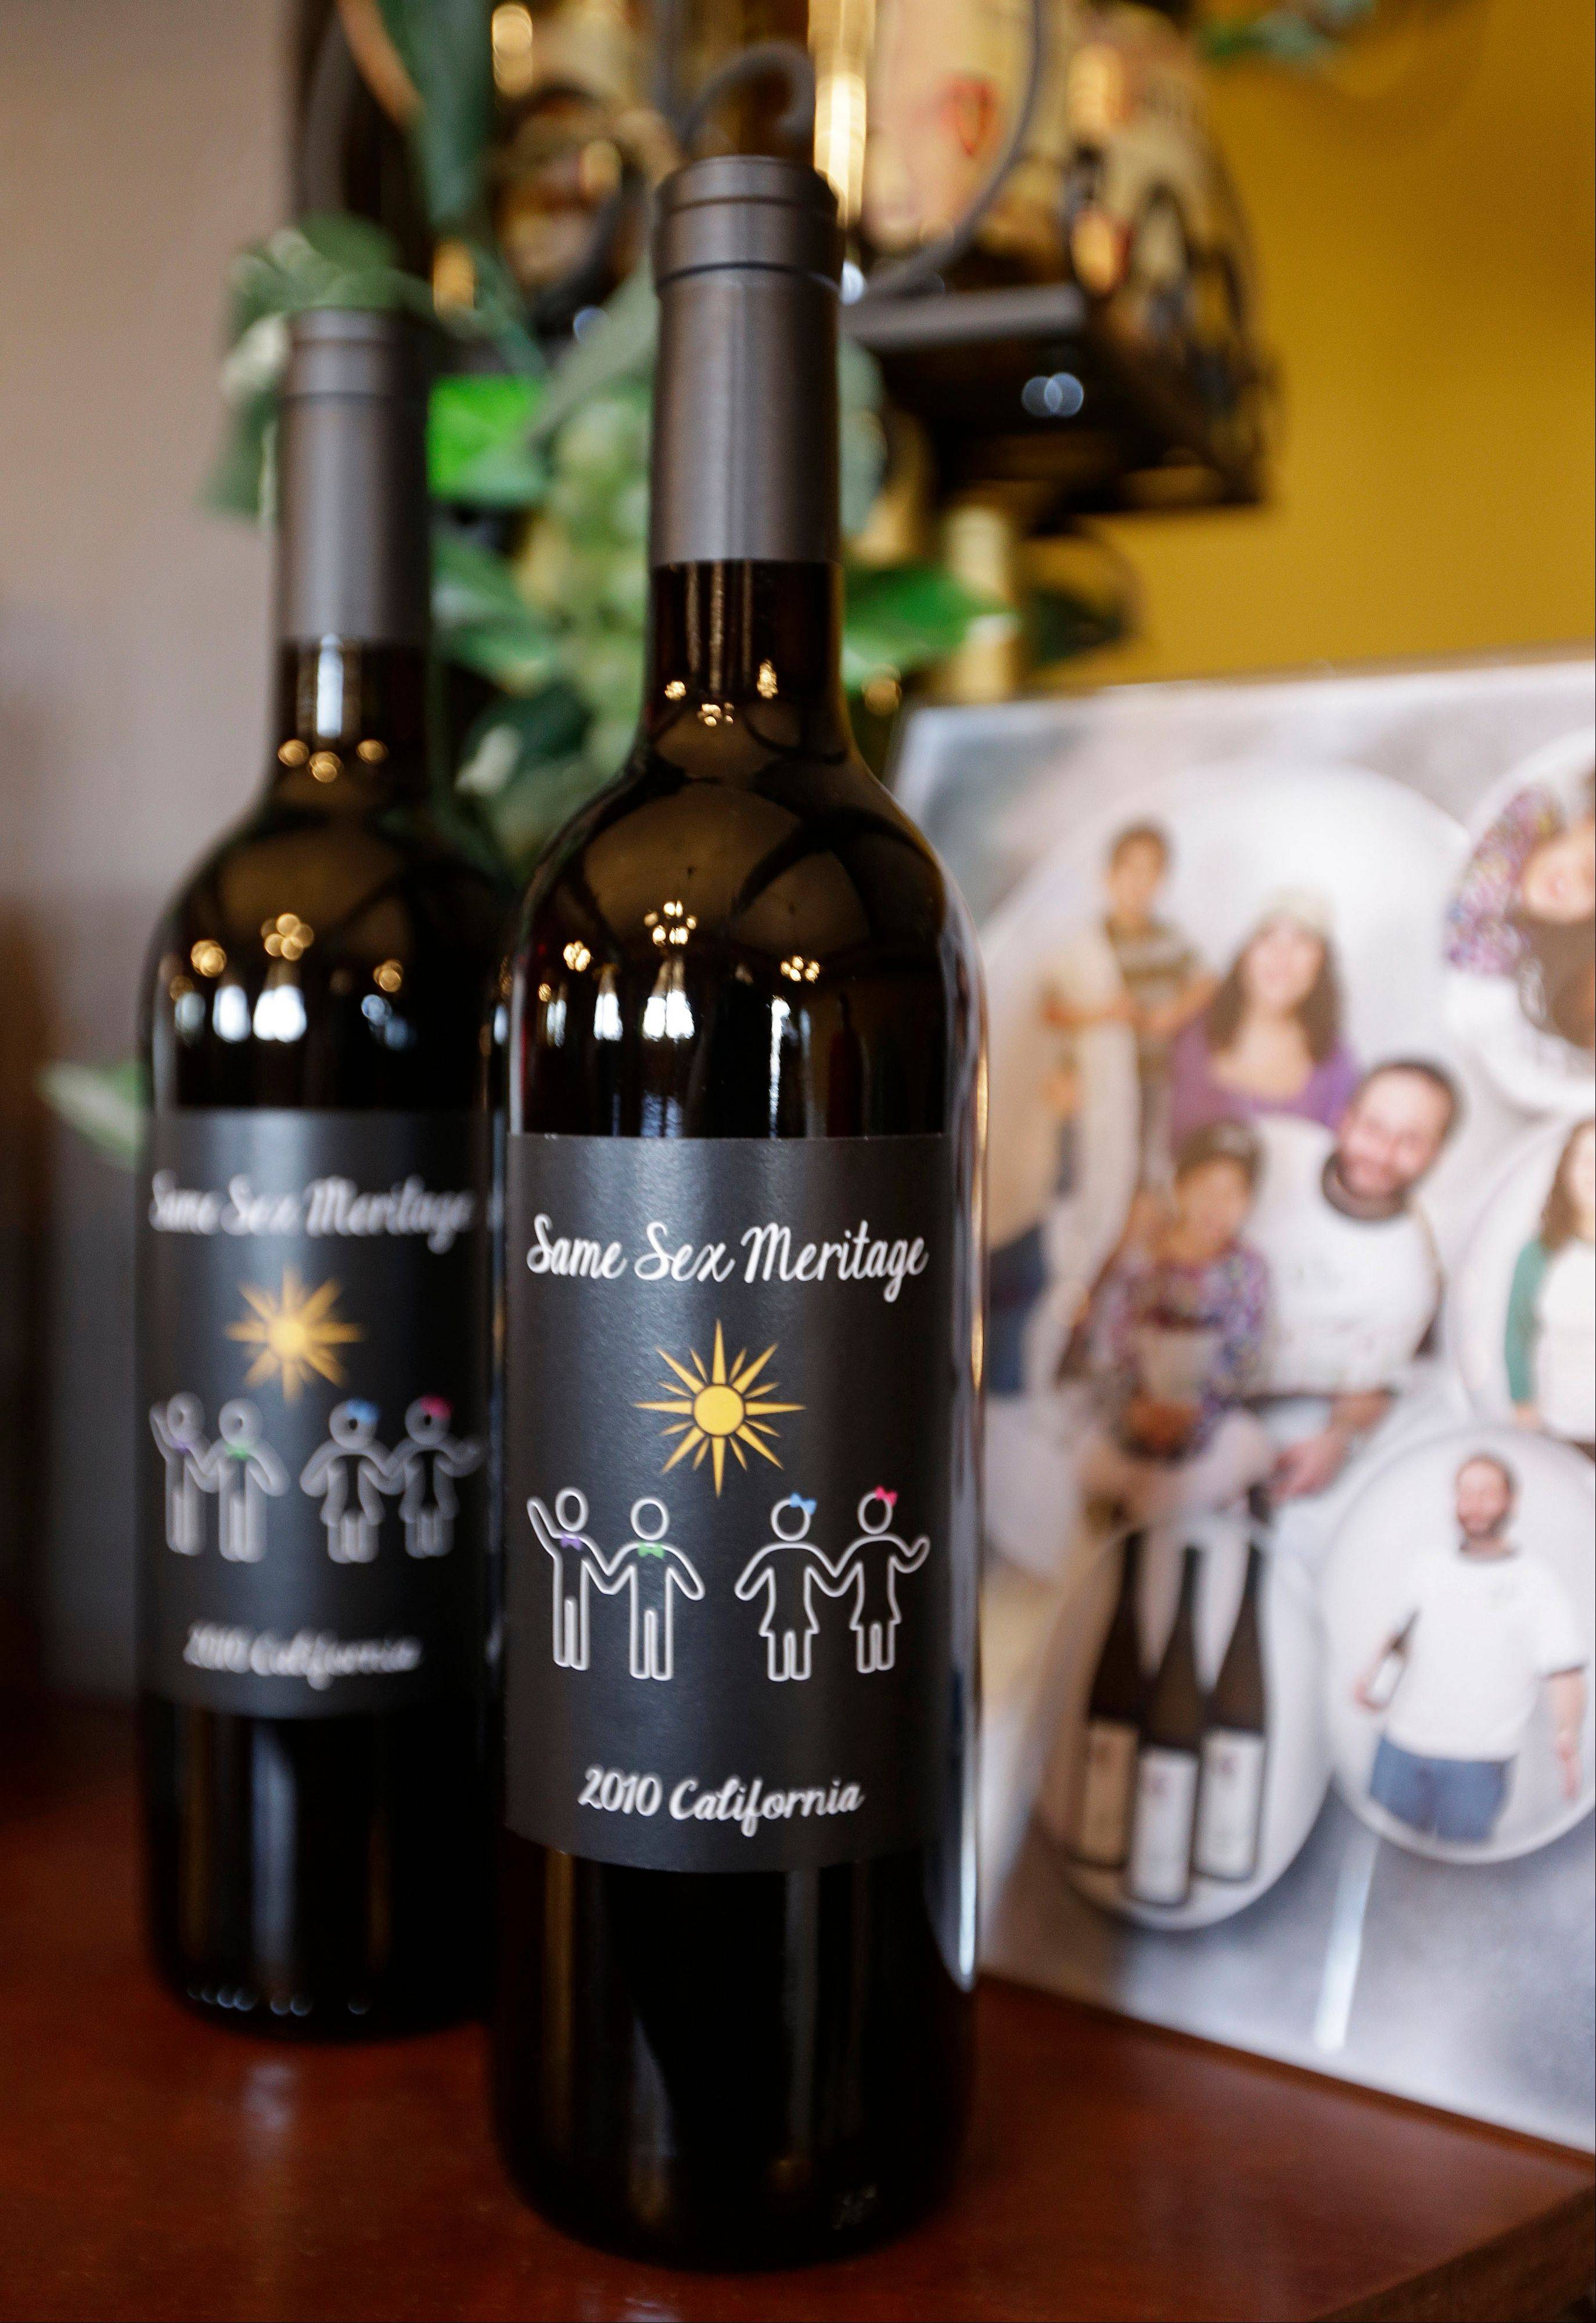 Gay marriage has been a hot topic for some months now, so perhaps it�s not surprising the wine world has taken note with wines like Same Sex Meritage by Stein Family Wines, that declare their support for same-sex couples right on the label.